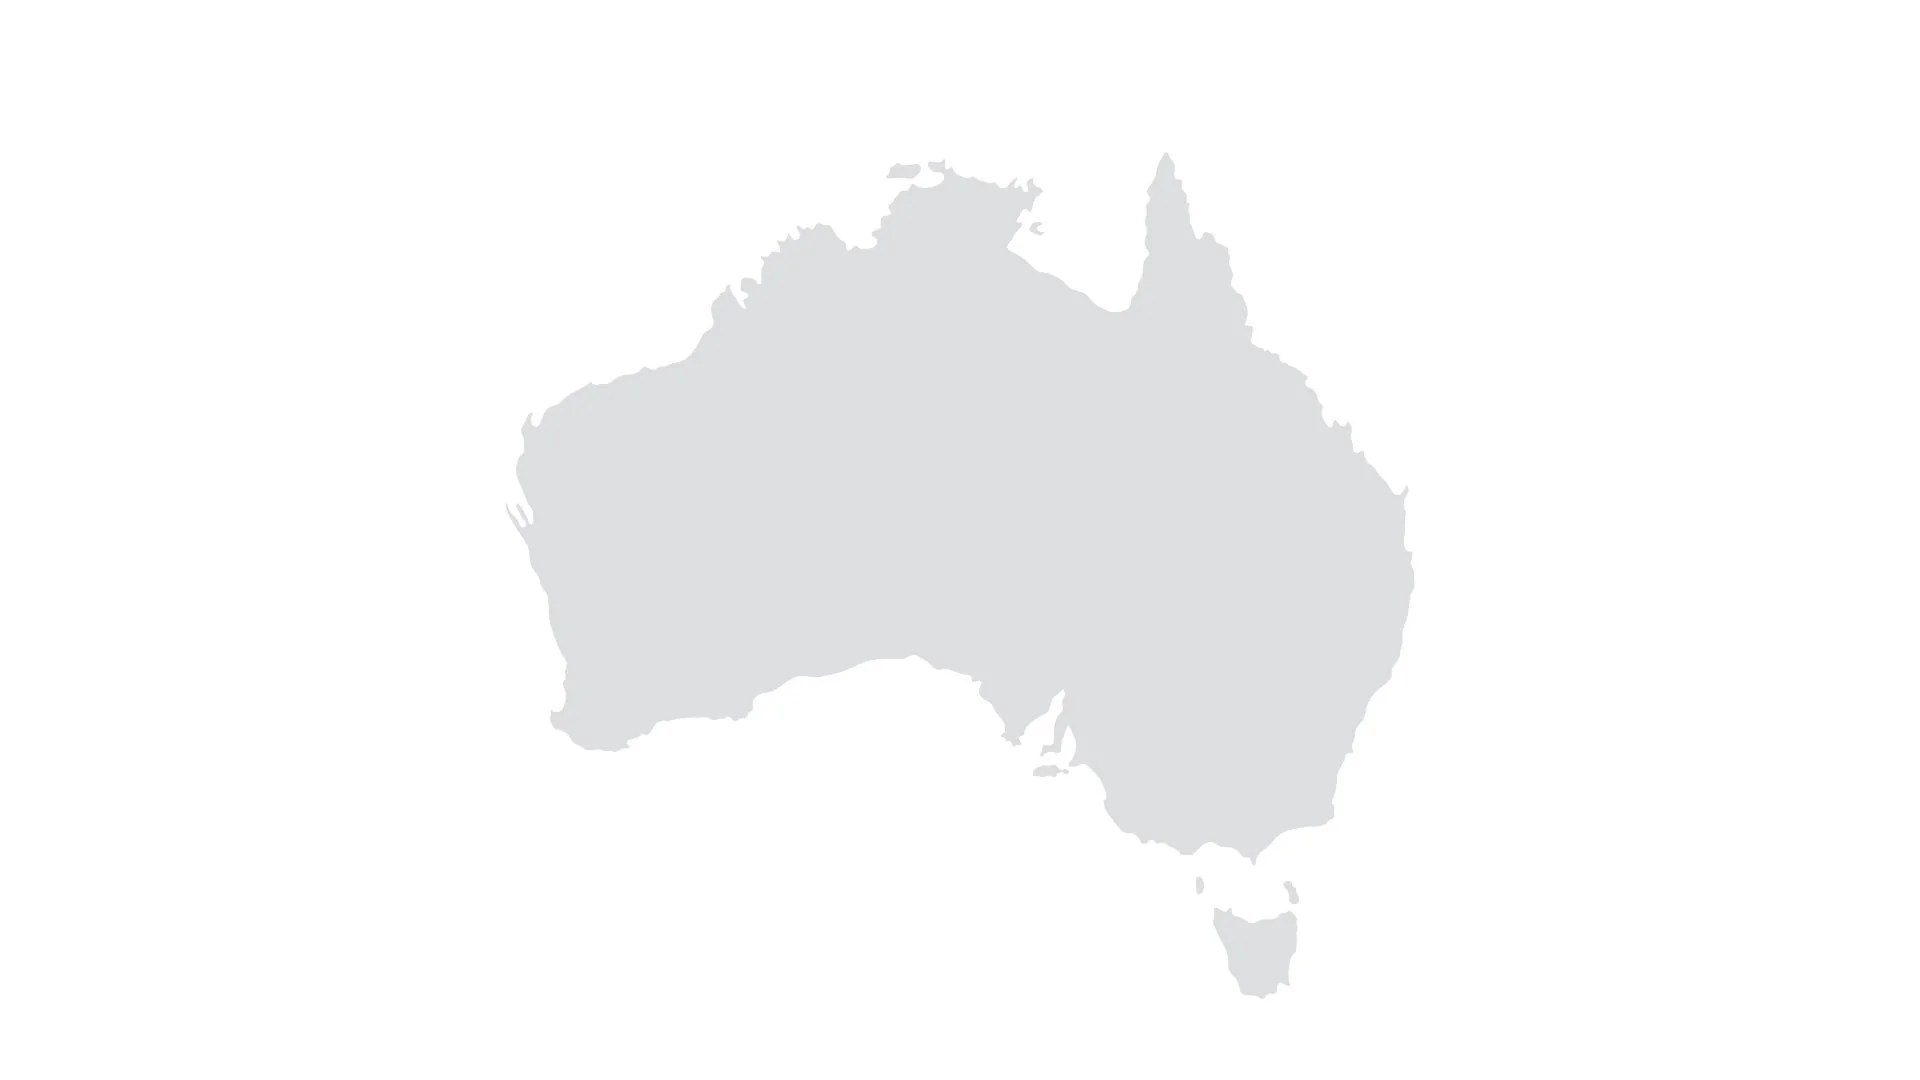 Australia Map for PowerPoint   Keynote   Presentation Shop     Maps   Australia Map for PowerPoint